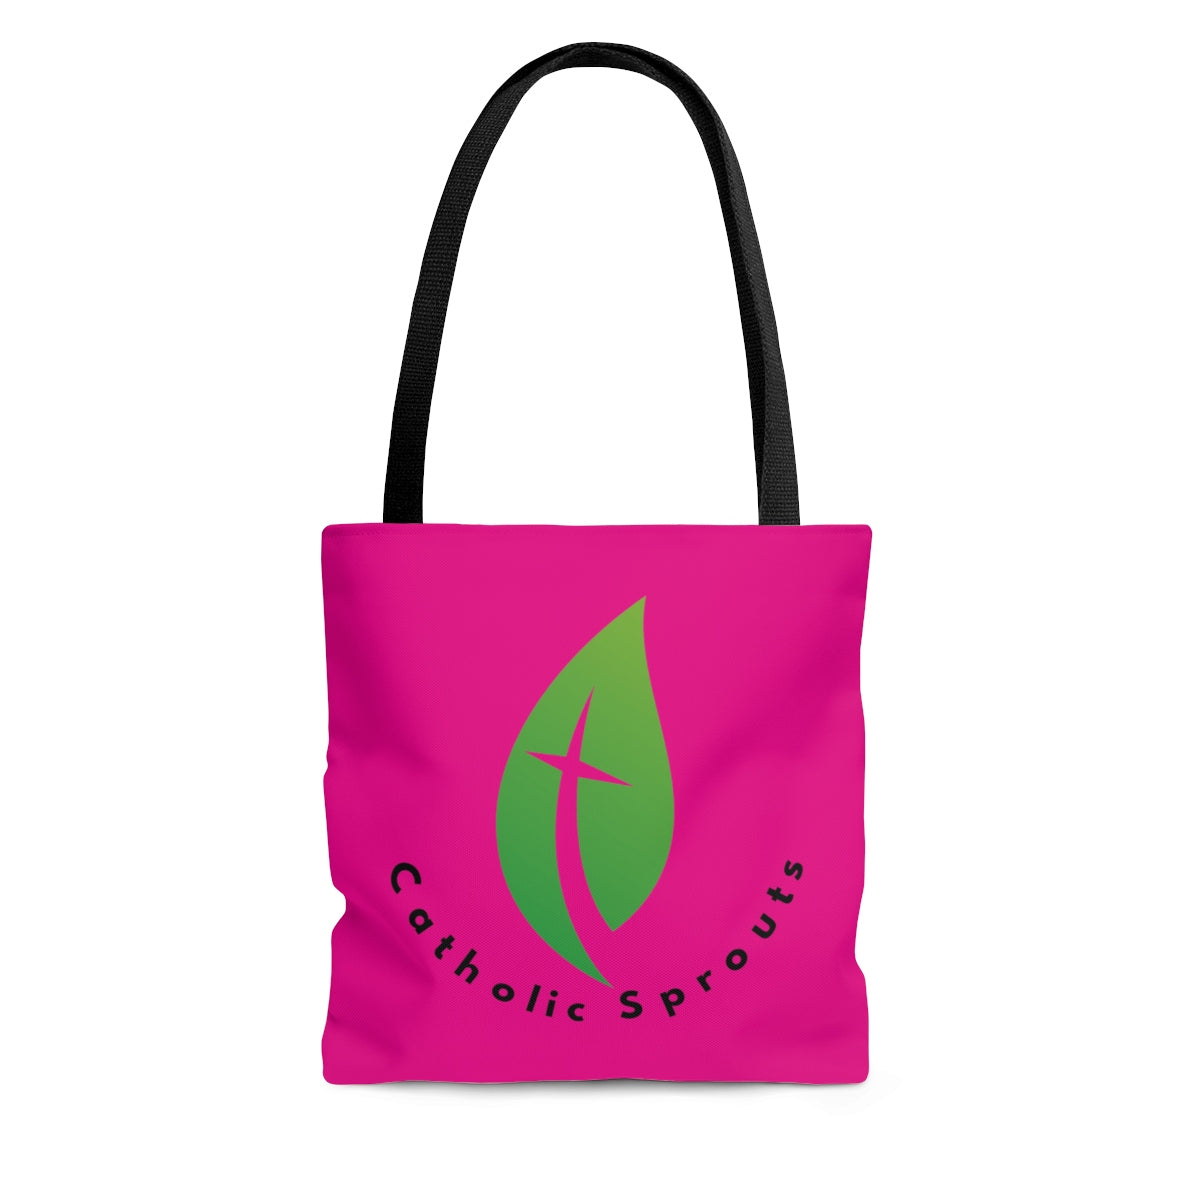 Catholic Sprouts Tote Bag PINK